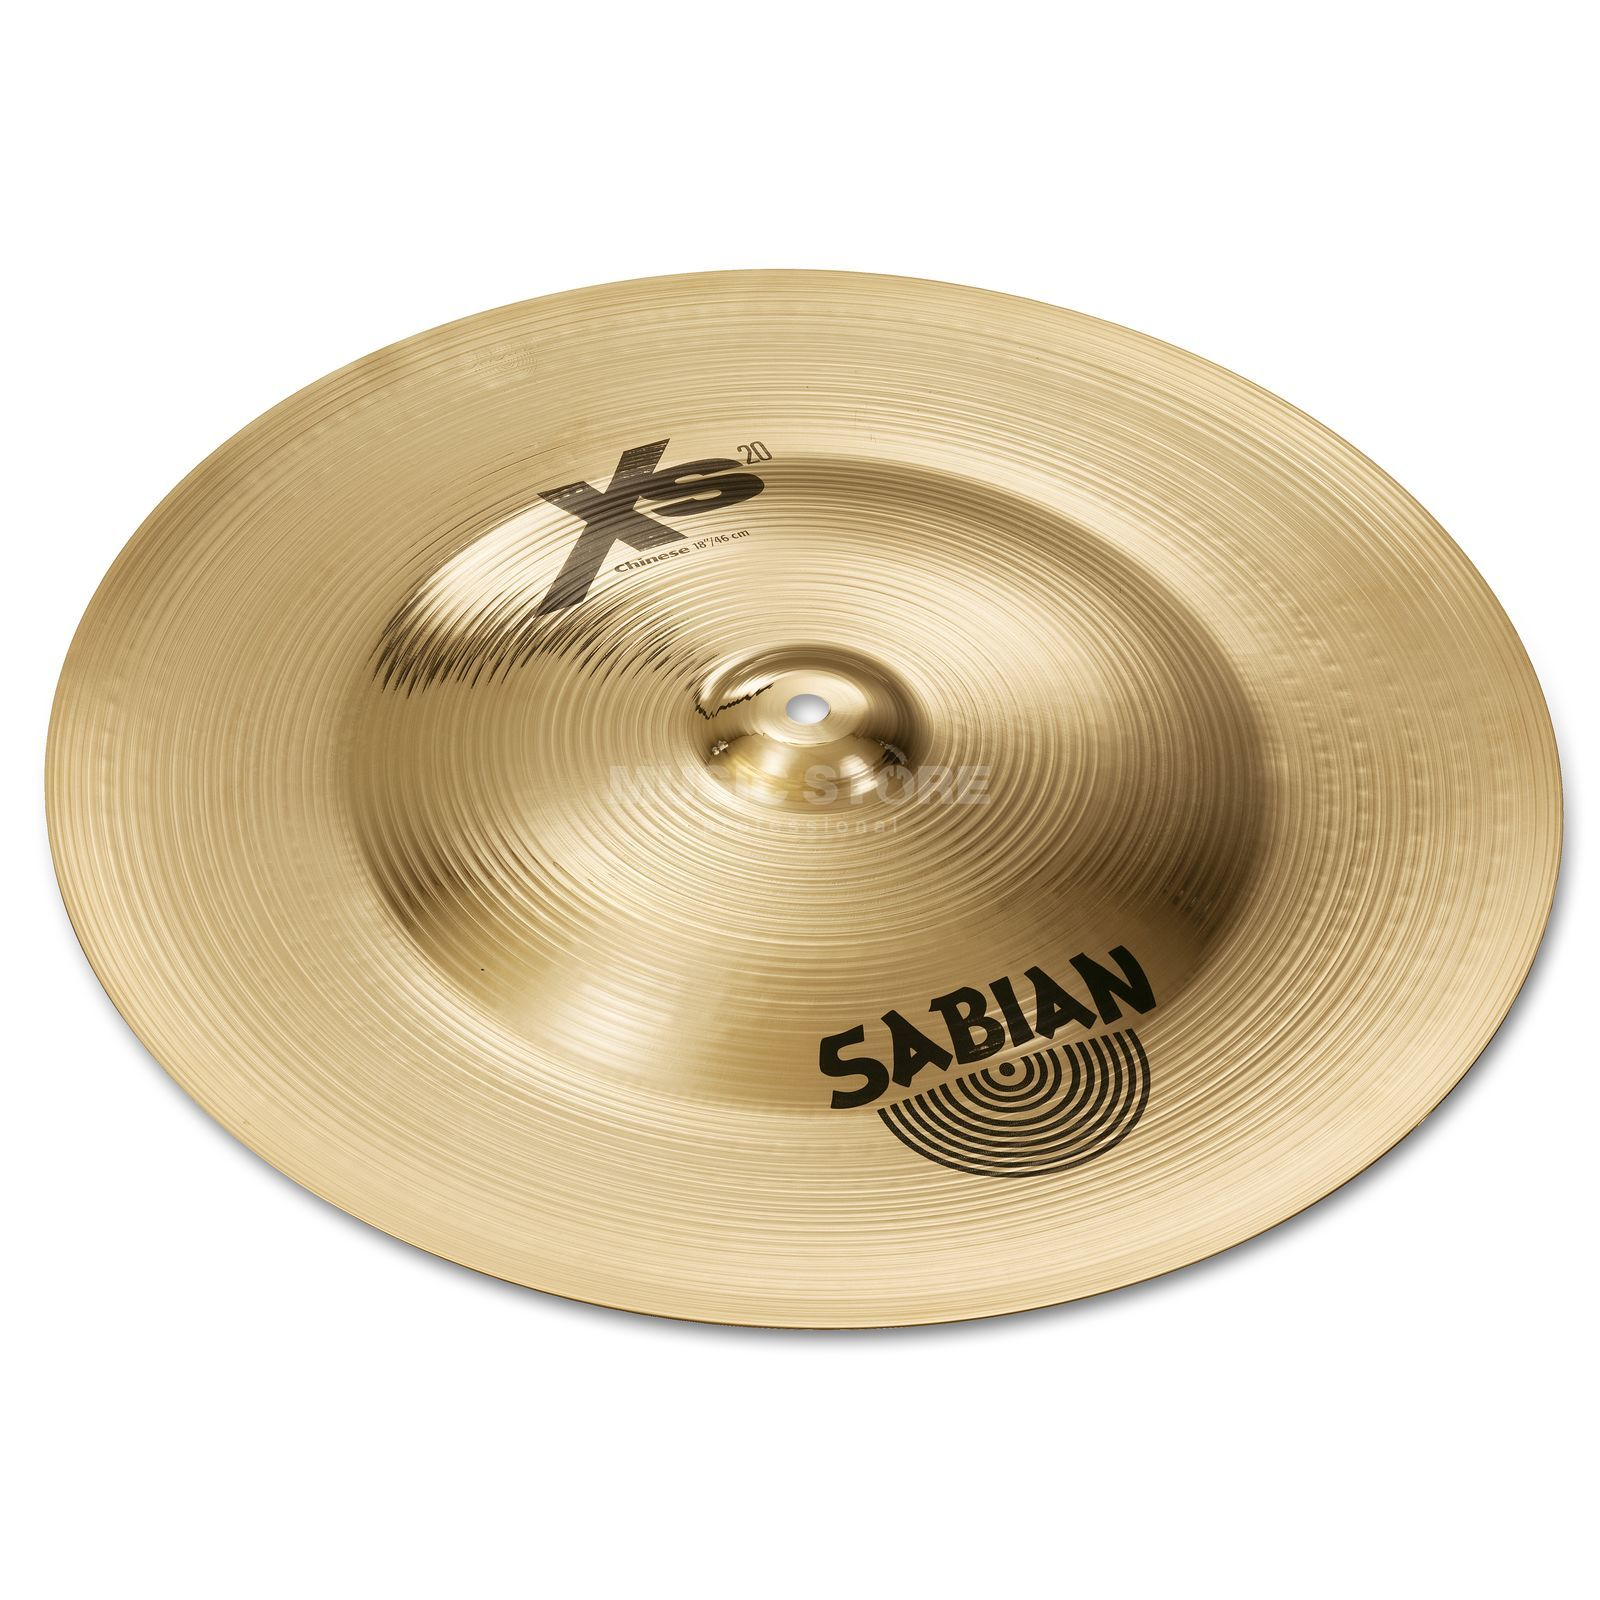 "Sabian XS20 China 18"", Brilliant Finish Produktbild"